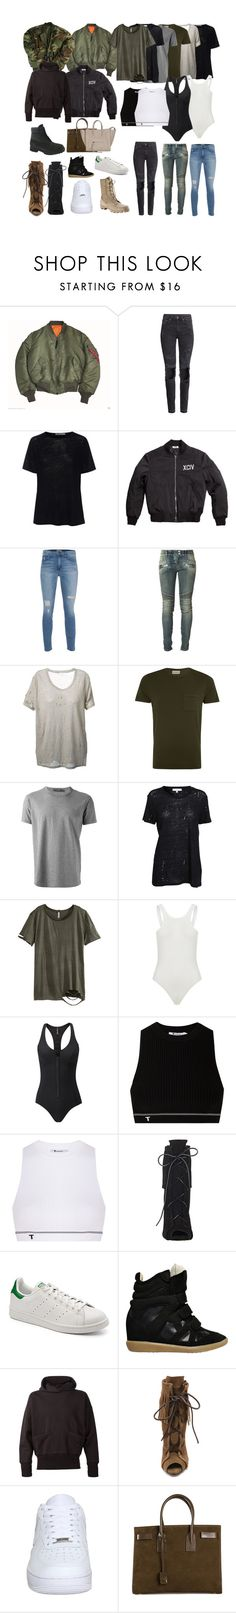 """""""Untitled #163"""" by deaja-xx ❤ liked on Polyvore featuring Alpha Industries, H&M, T By Alexander Wang, Current/Elliott, Balmain, IRO, Oliver Spencer, Dolce&Gabbana, Lisa Marie Fernandez and Giuseppe Zanotti"""